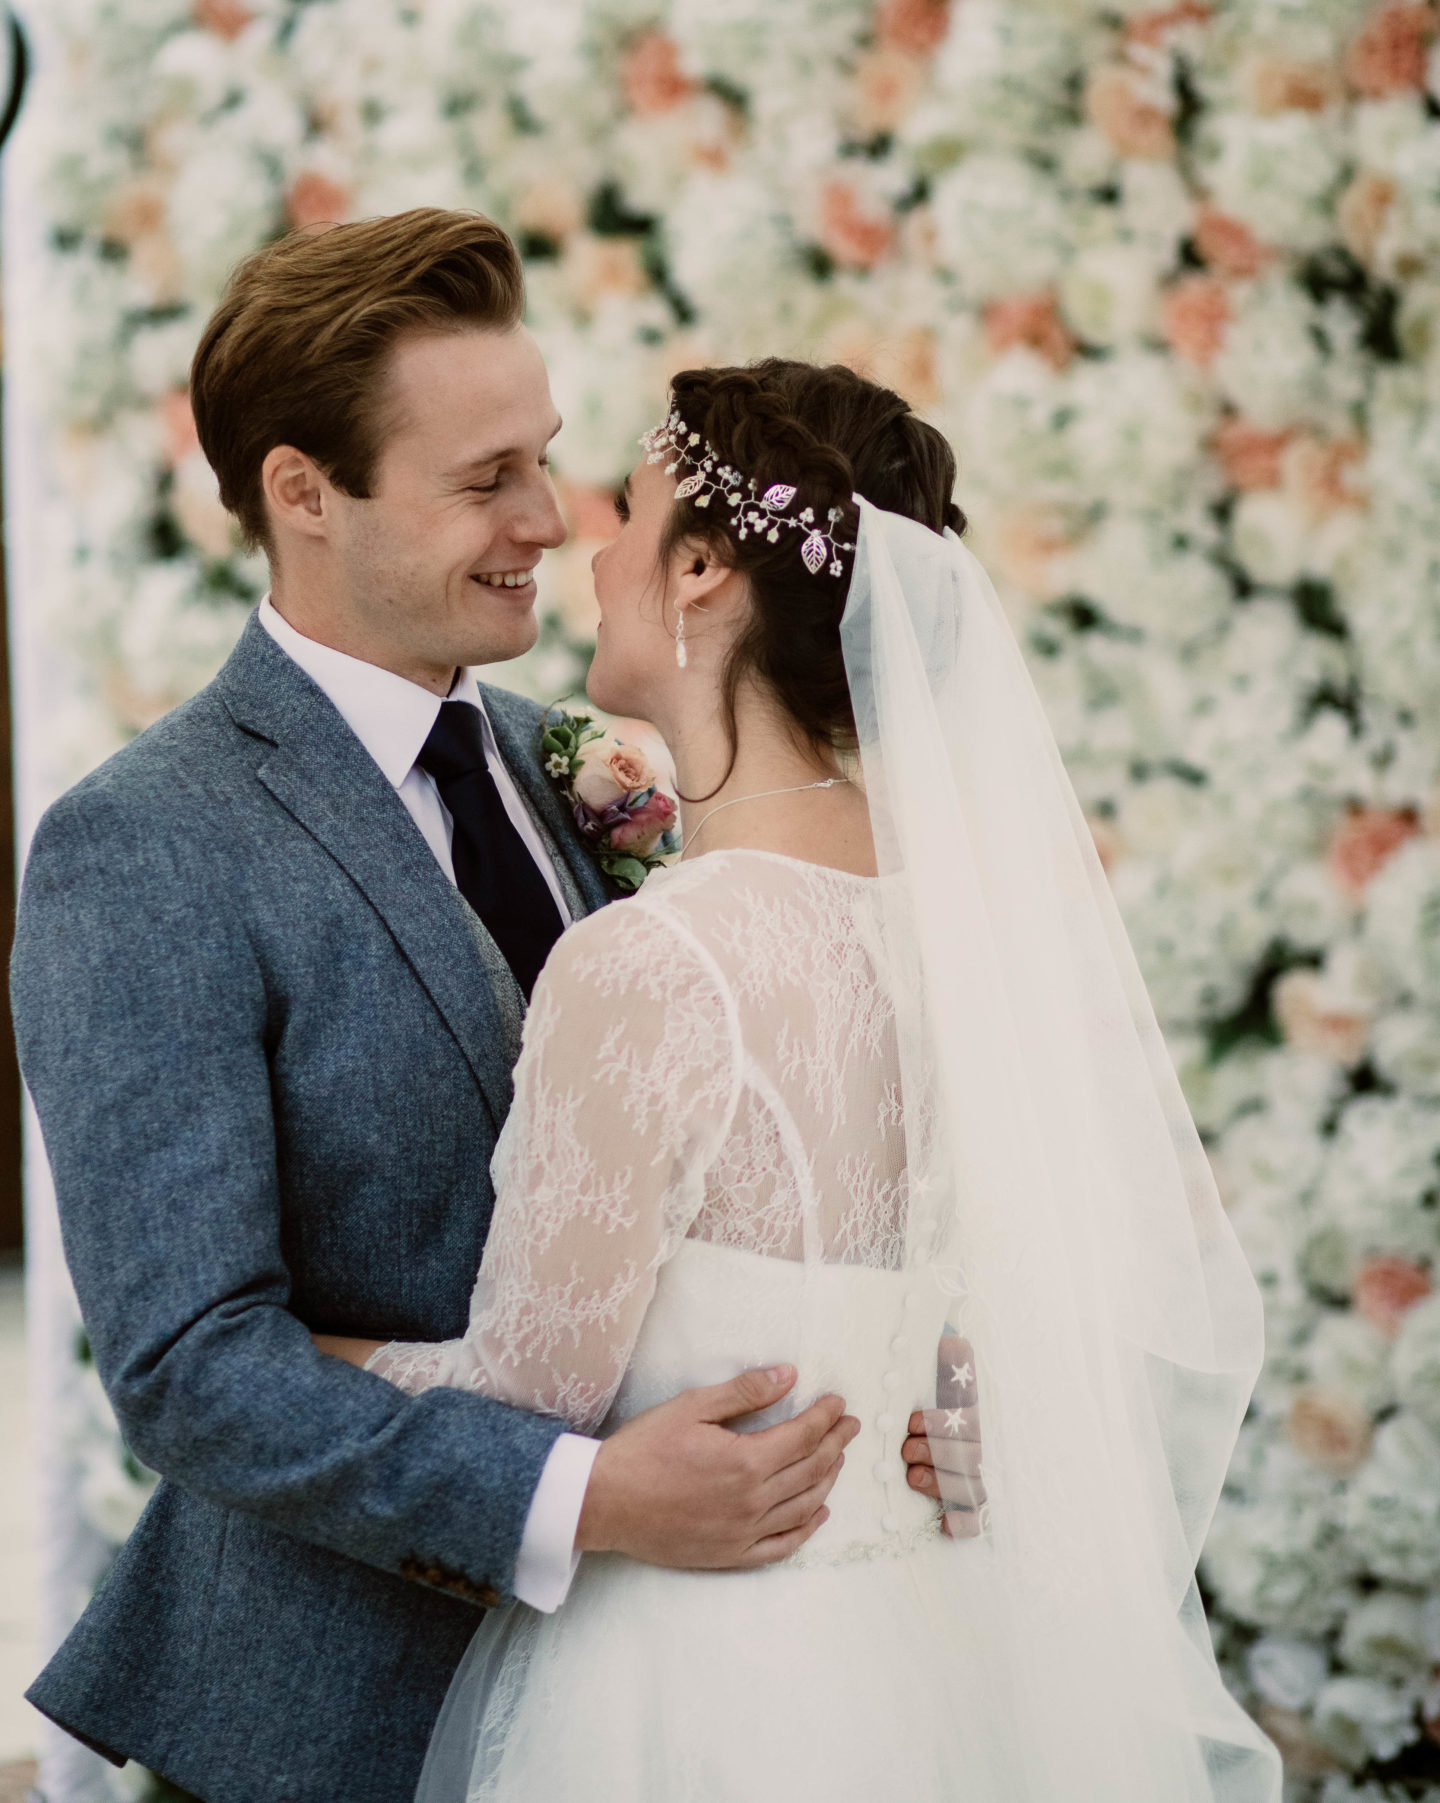 Romeo and Juliet Inspired Wedding With Vintage Charm At Apton Hall, Essex